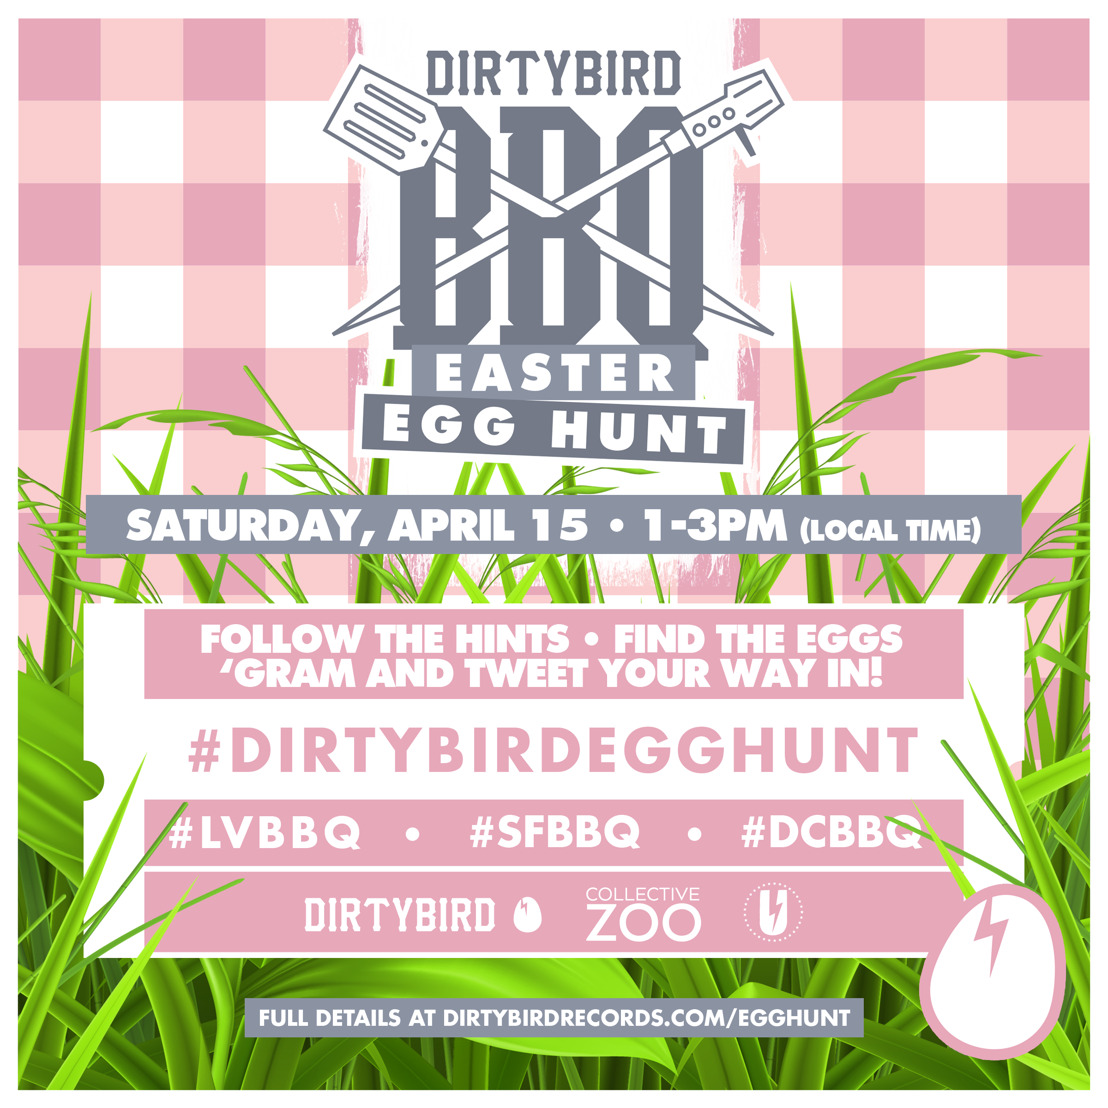 Dirtybird Announces Dirtybird Easter Egg Hunts in Washington DC, San Francisco & Las Vegas